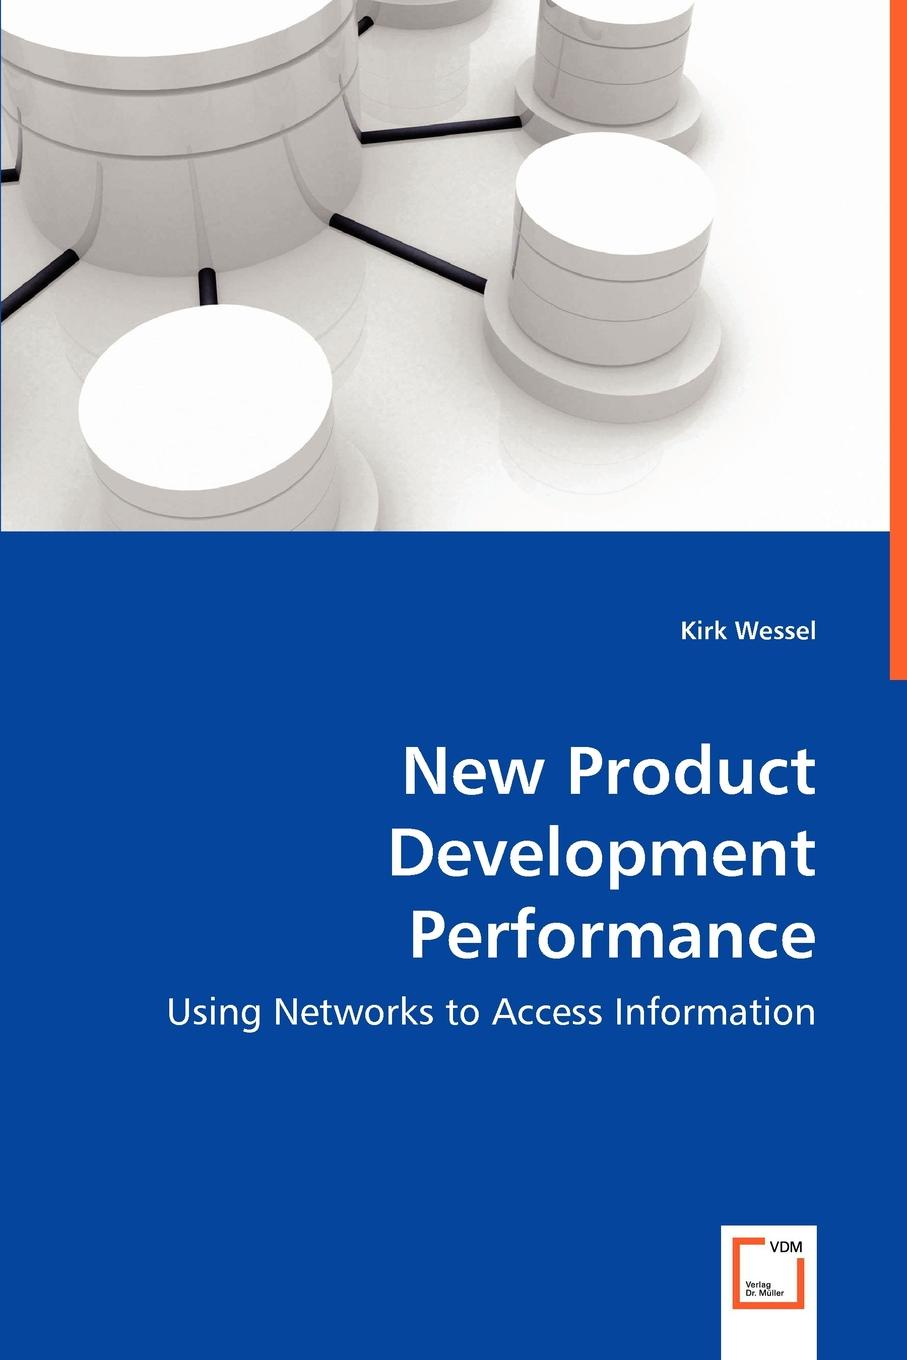 Kirk Wessel New Product Development Performance planning and evaluates performance of radio network